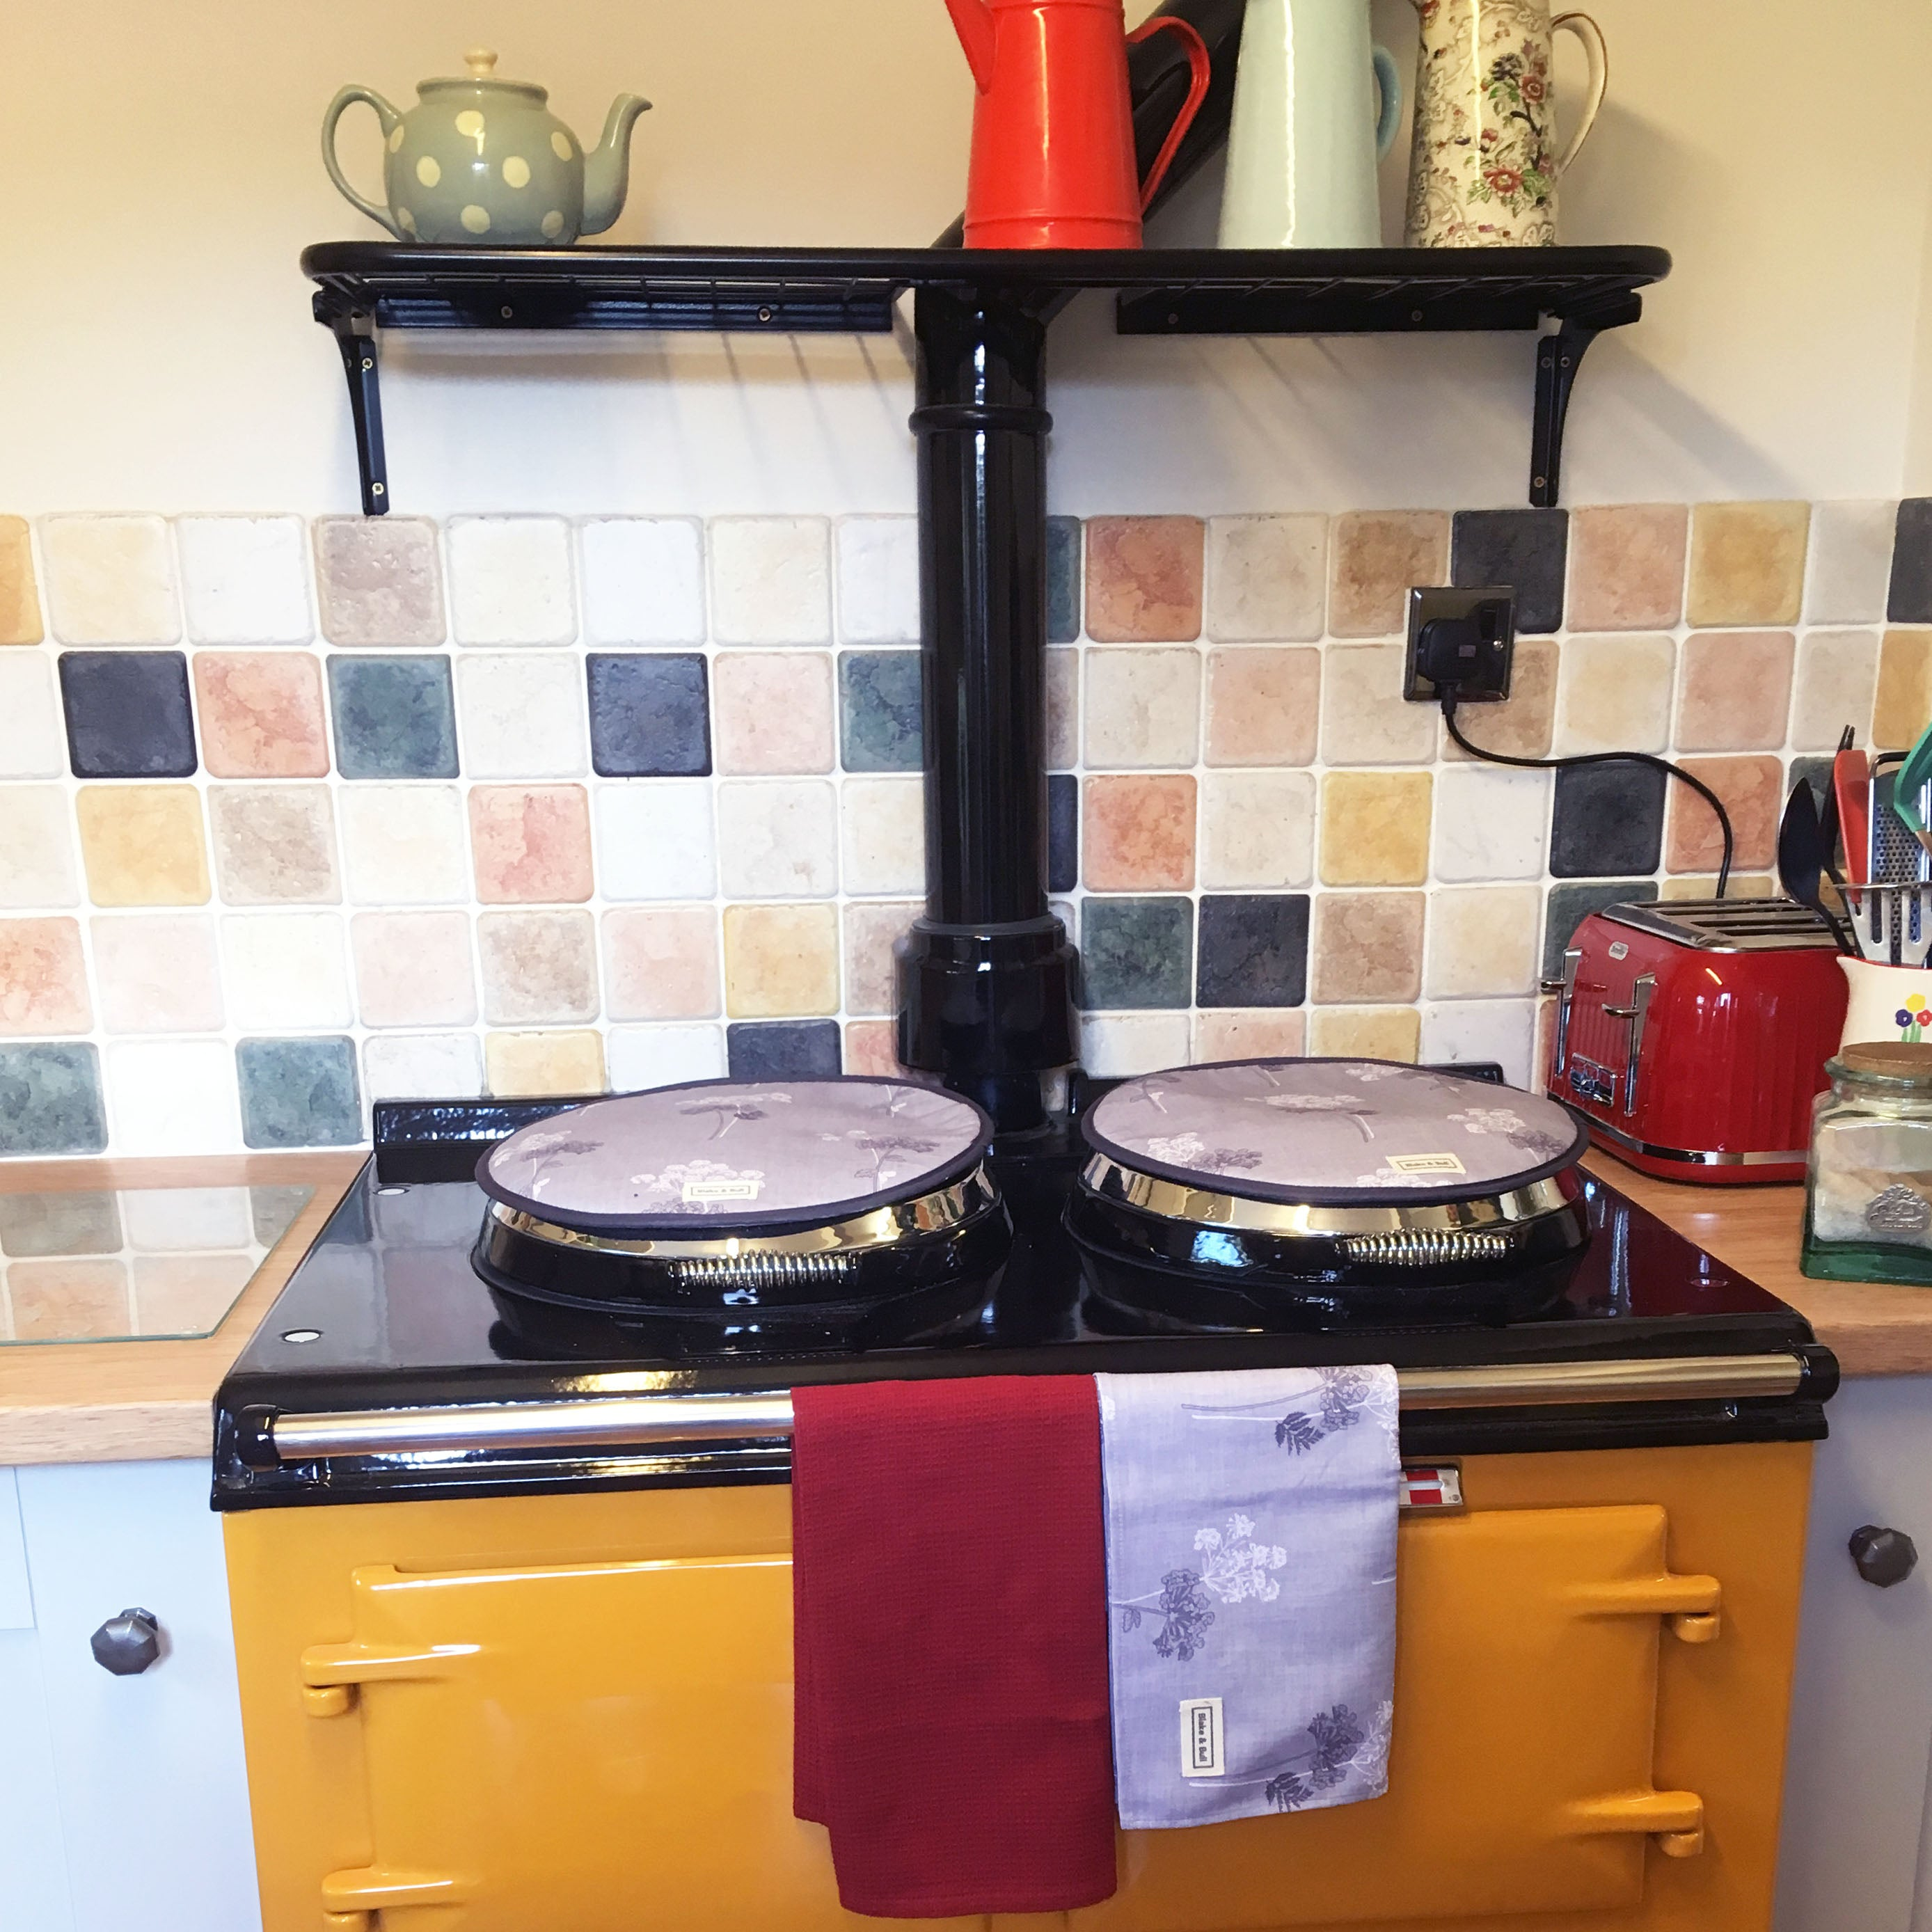 Wall rack for use with Aga range cooker